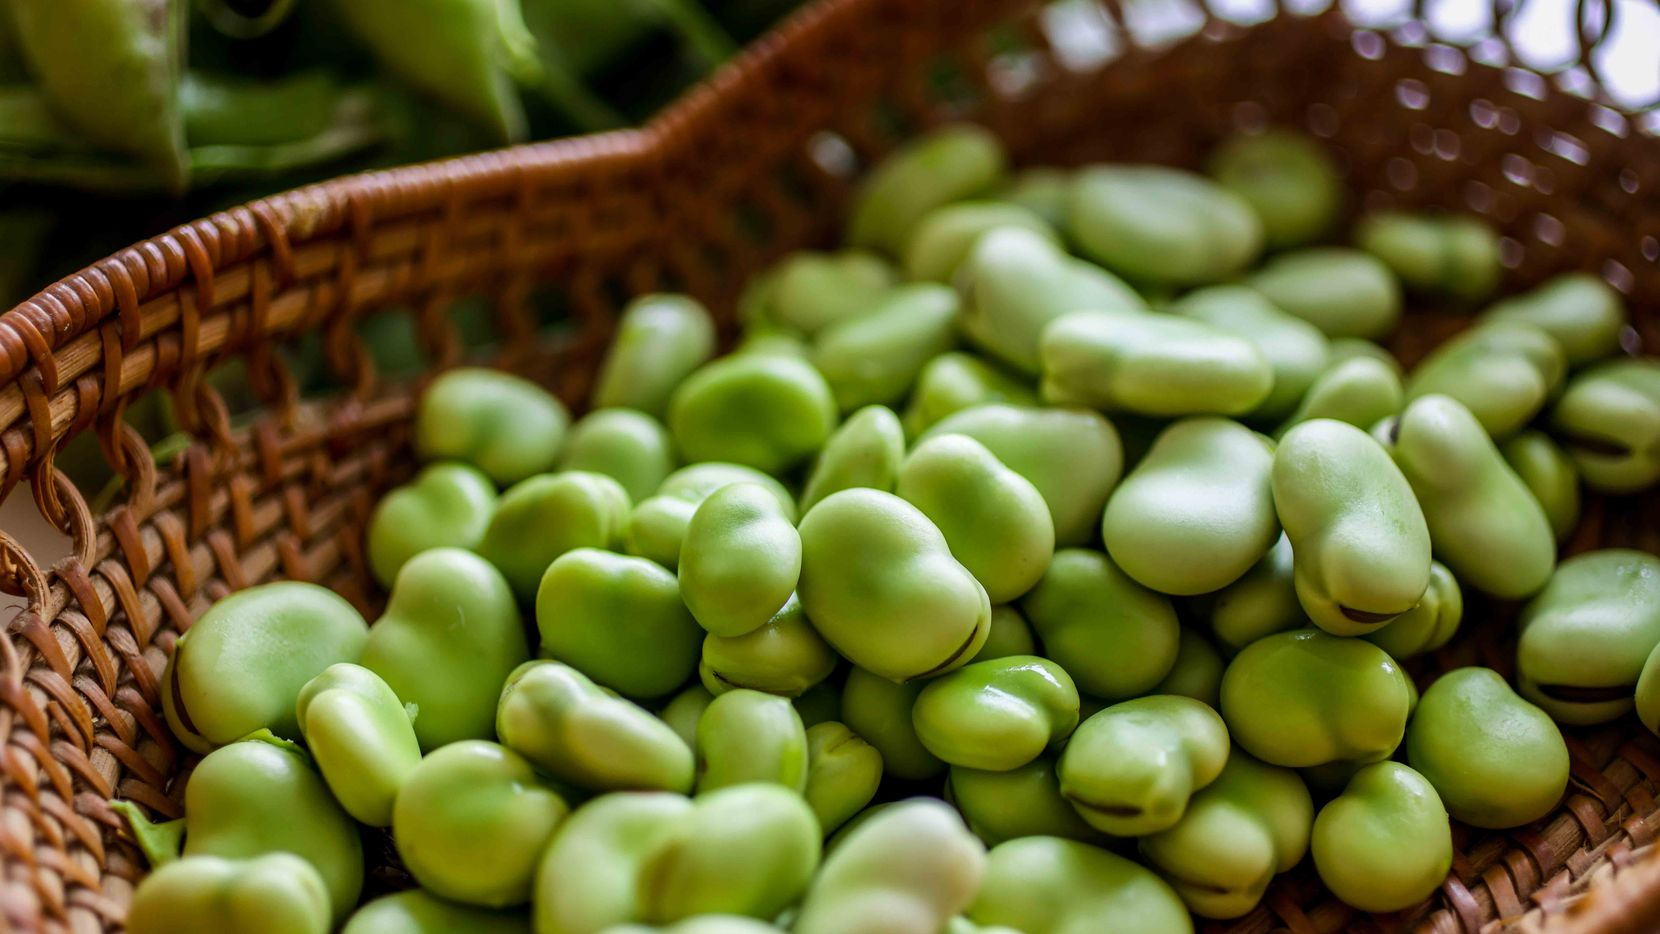 Fresh fava beans still skin on before to get blanched to make Fava Bean Purée